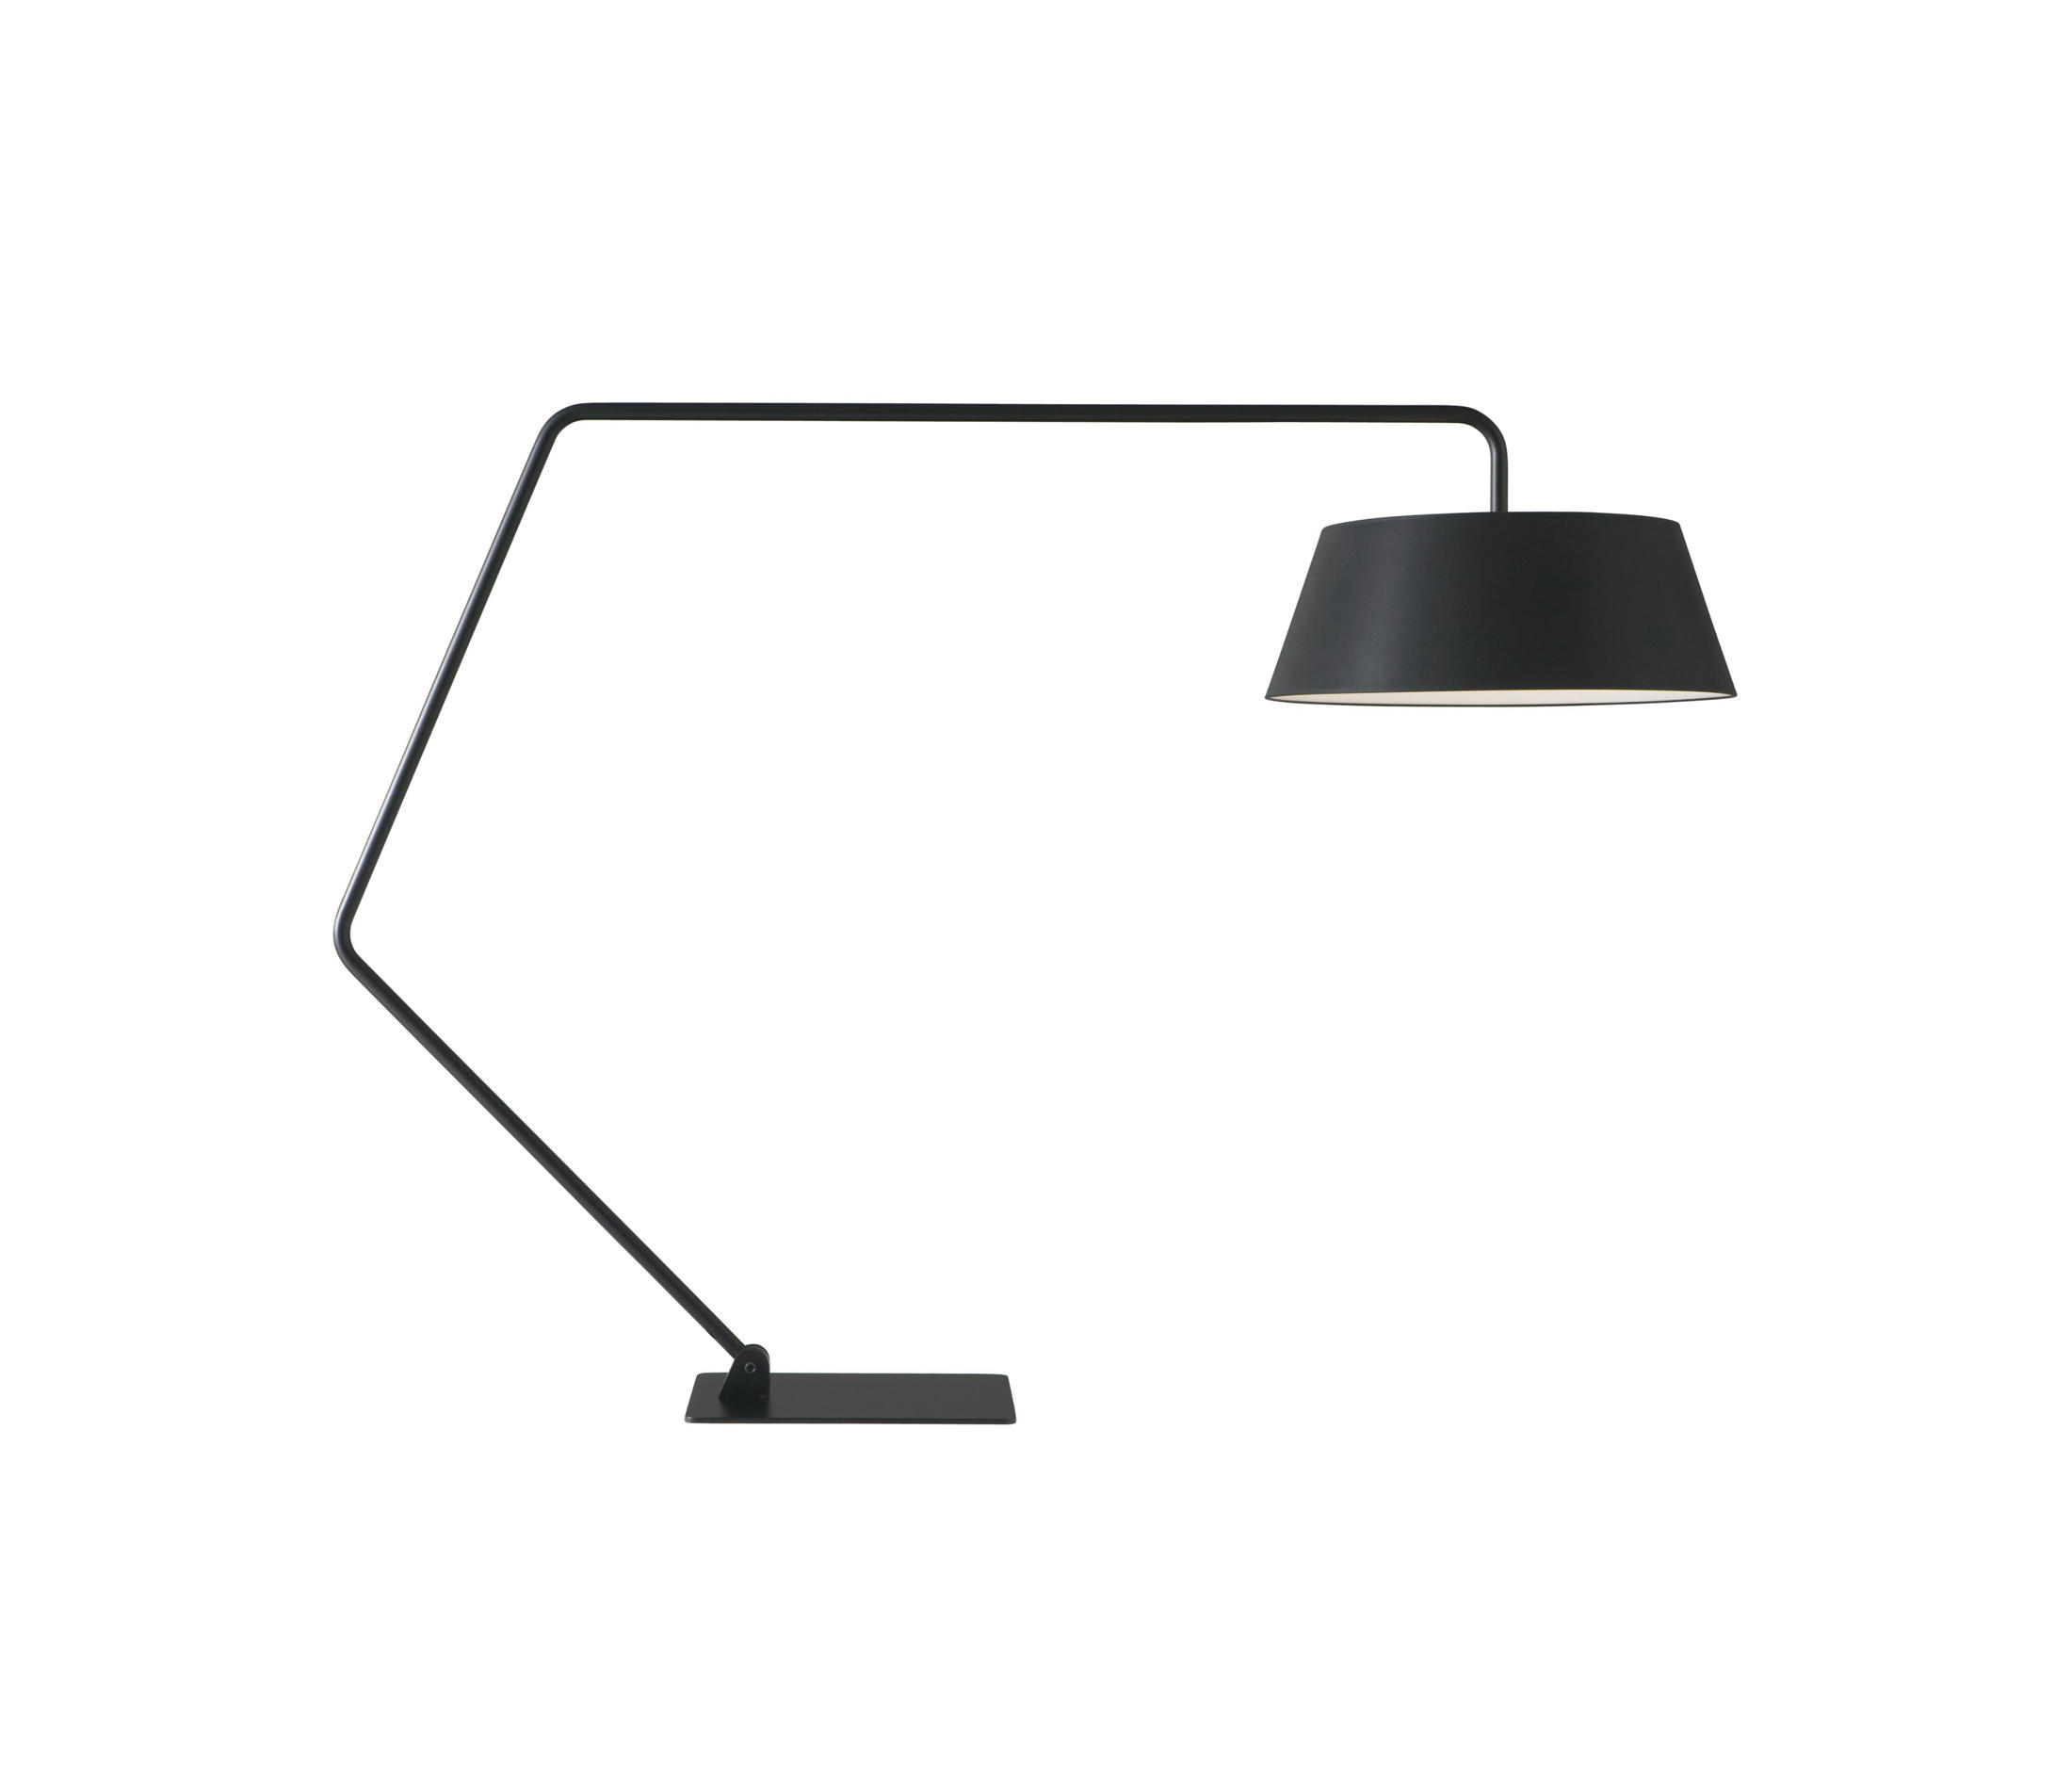 bul general lighting from ligne roset architonic. Black Bedroom Furniture Sets. Home Design Ideas